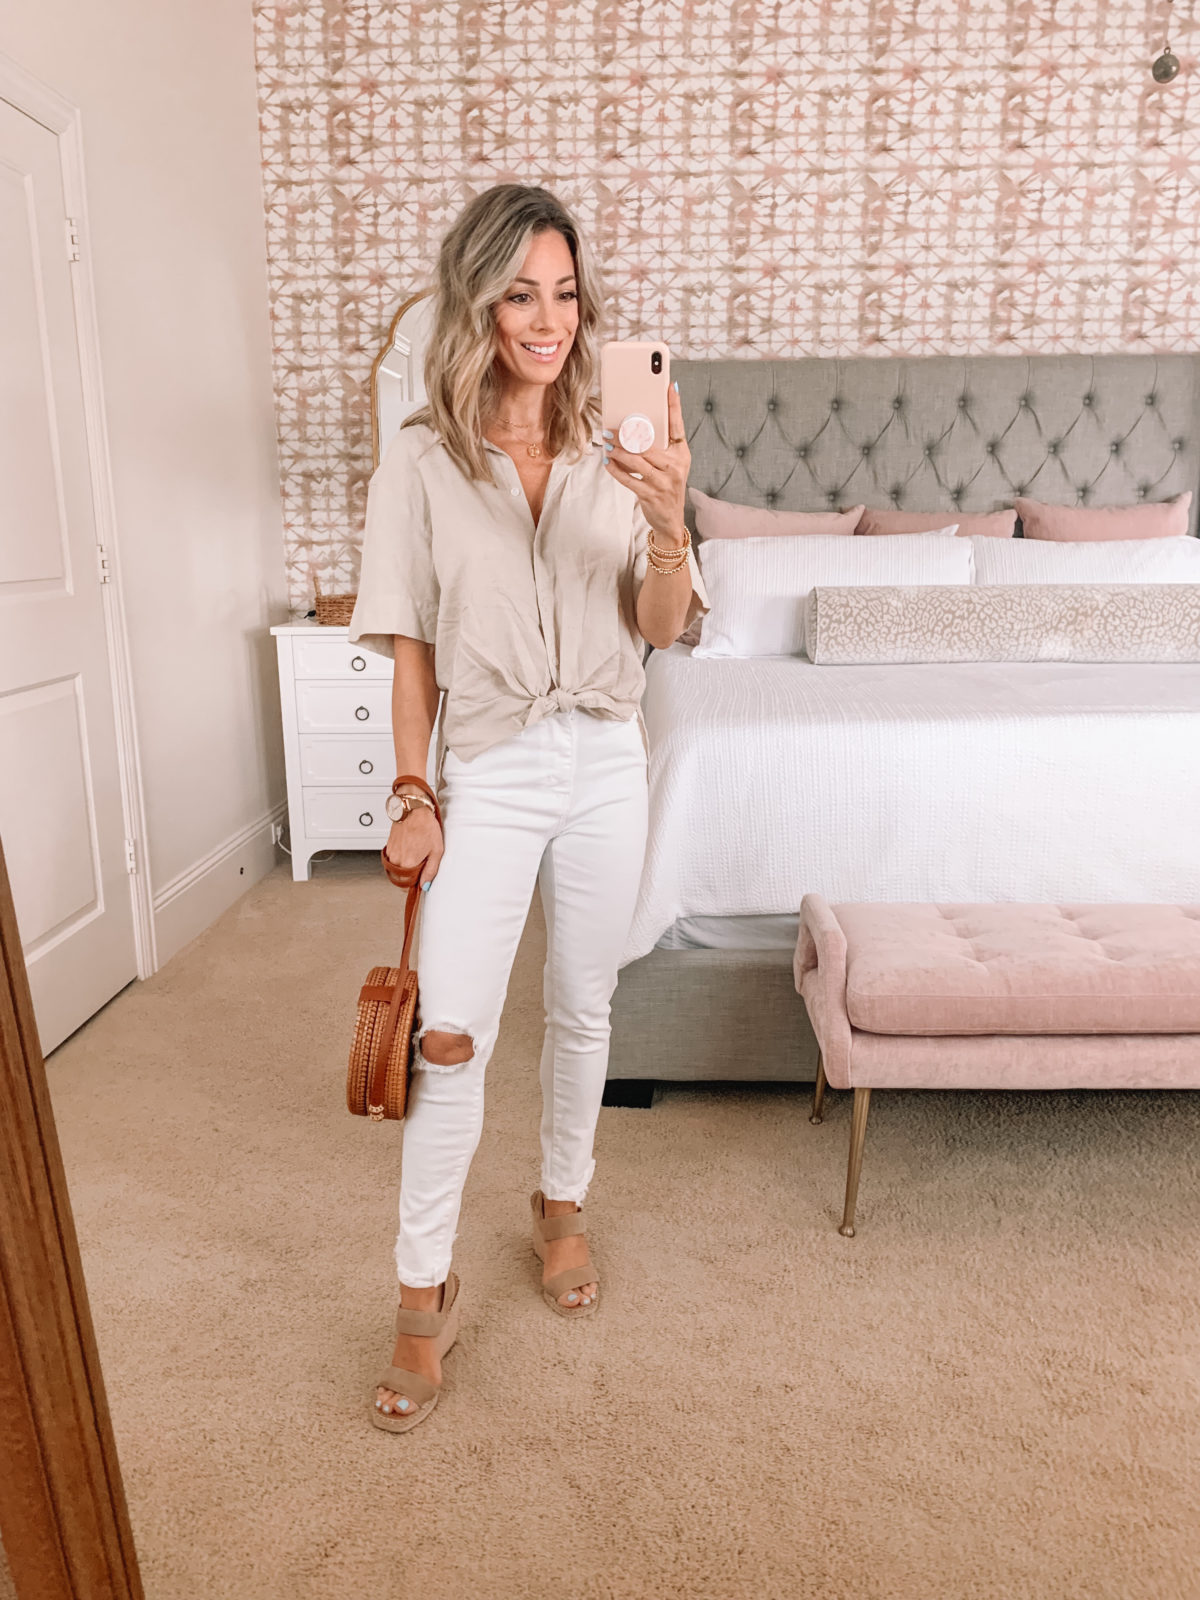 Dressing Room Finds, Knot front top and white jeans with Crossbody and wedges